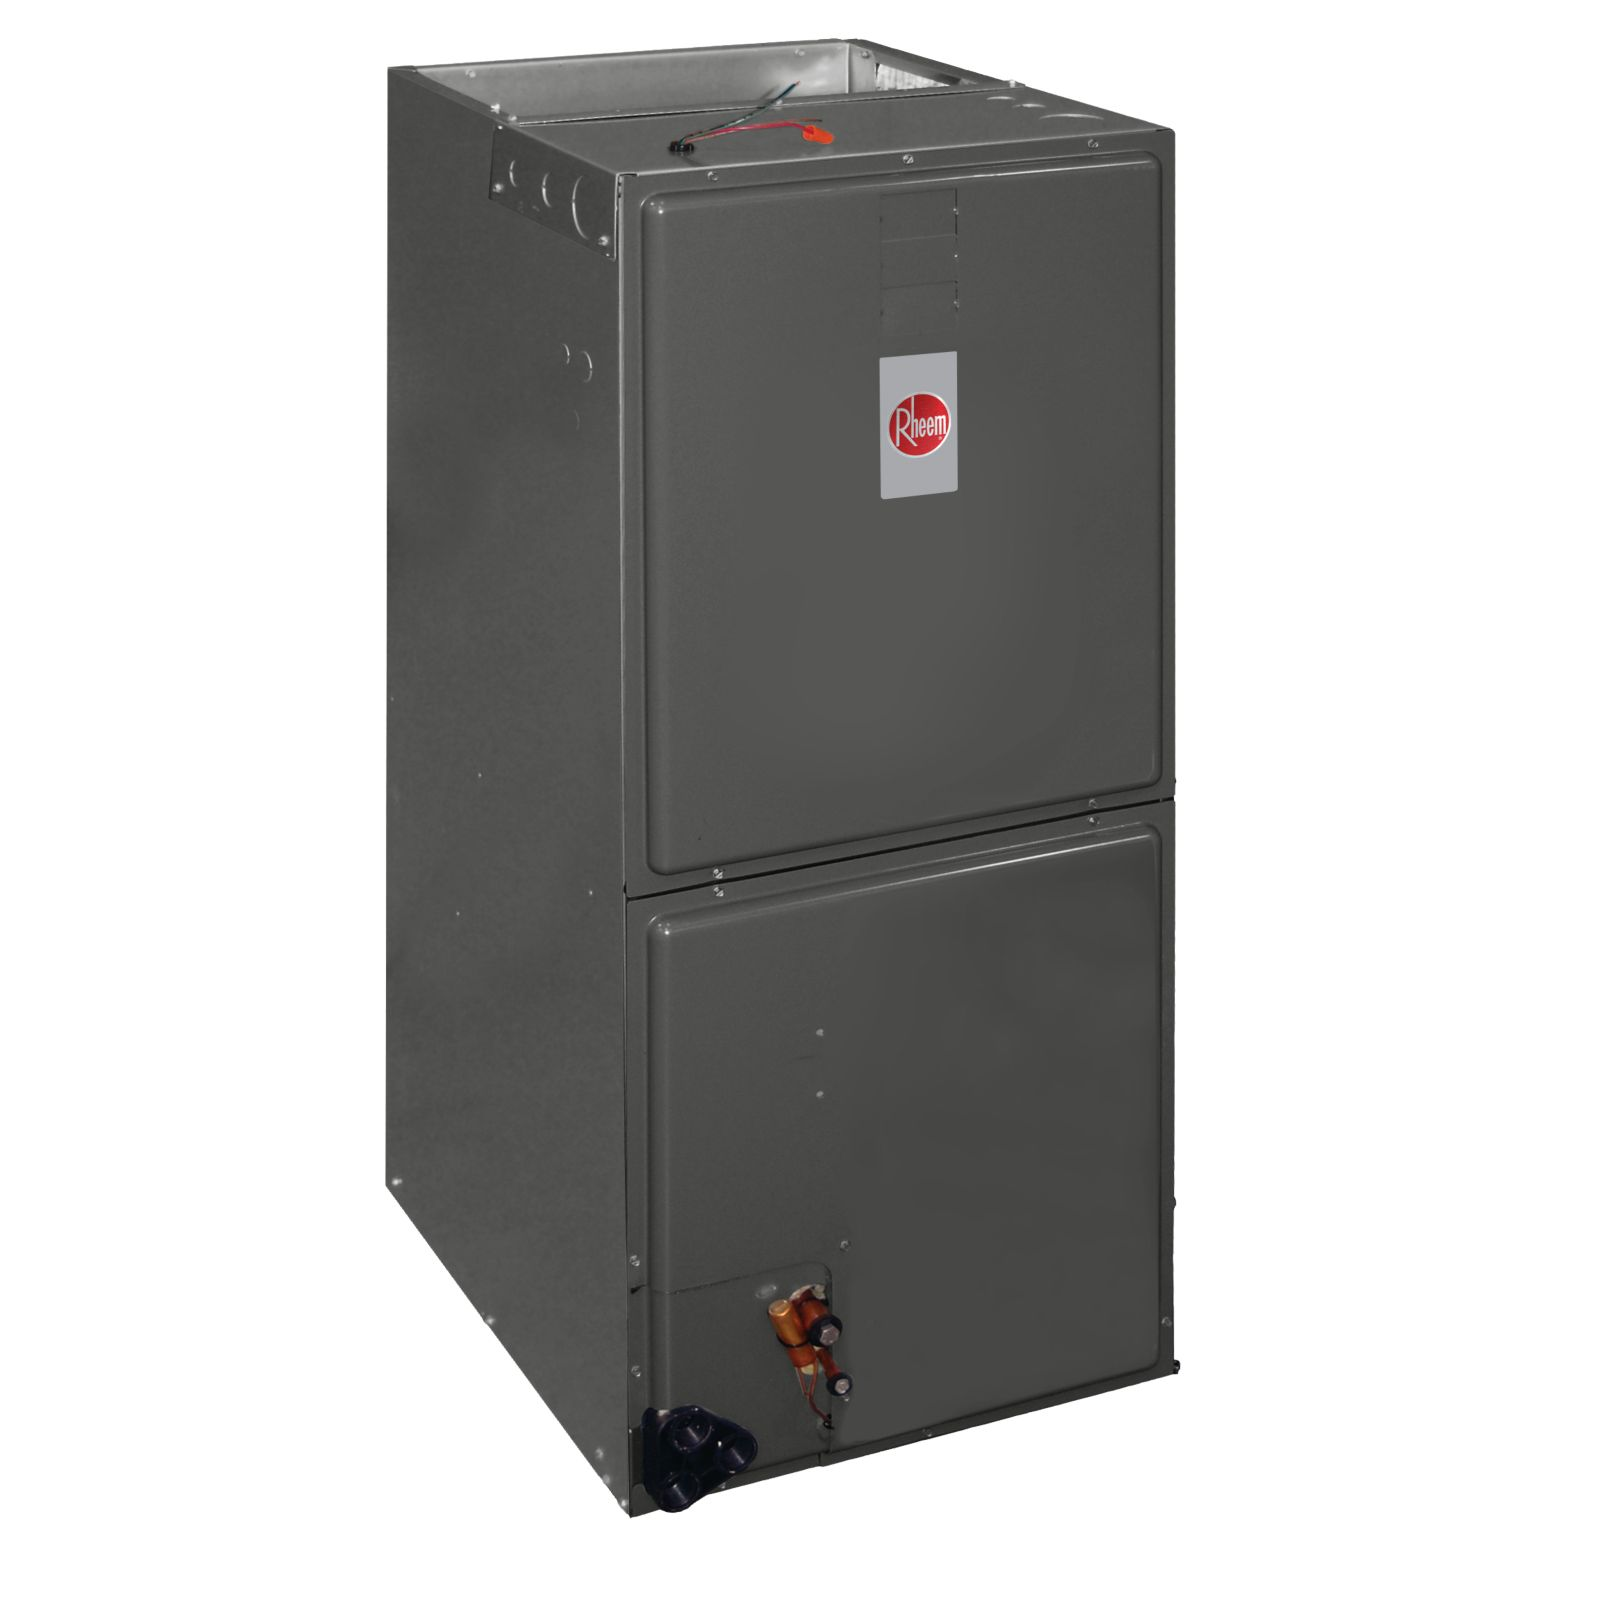 Rheem RHKL-HM2417JA - Premium Series 2 Ton Multiposition Air Handler - Up to 16 SEER - R410A - Quiet ECM Motor